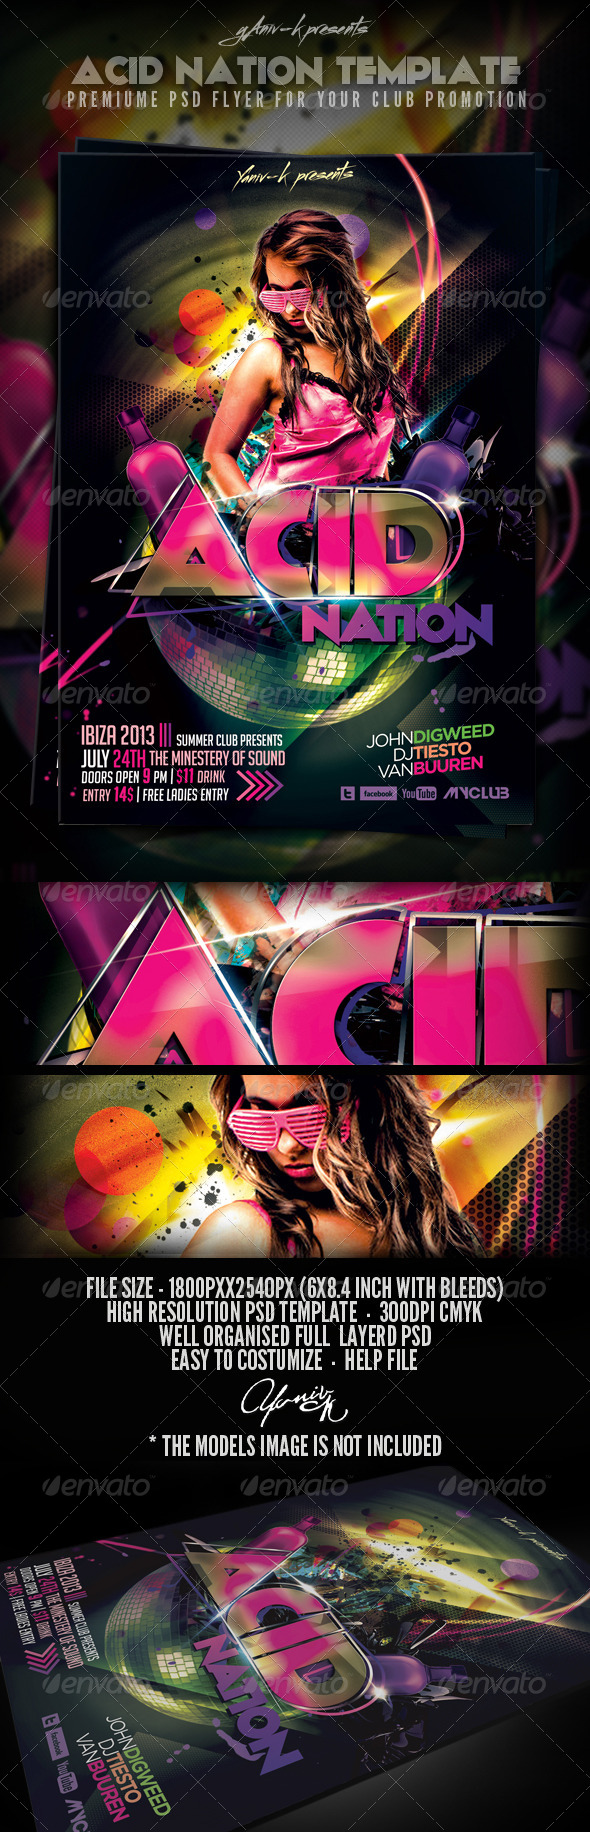 Acid Nation Flyer Template - Clubs & Parties Events